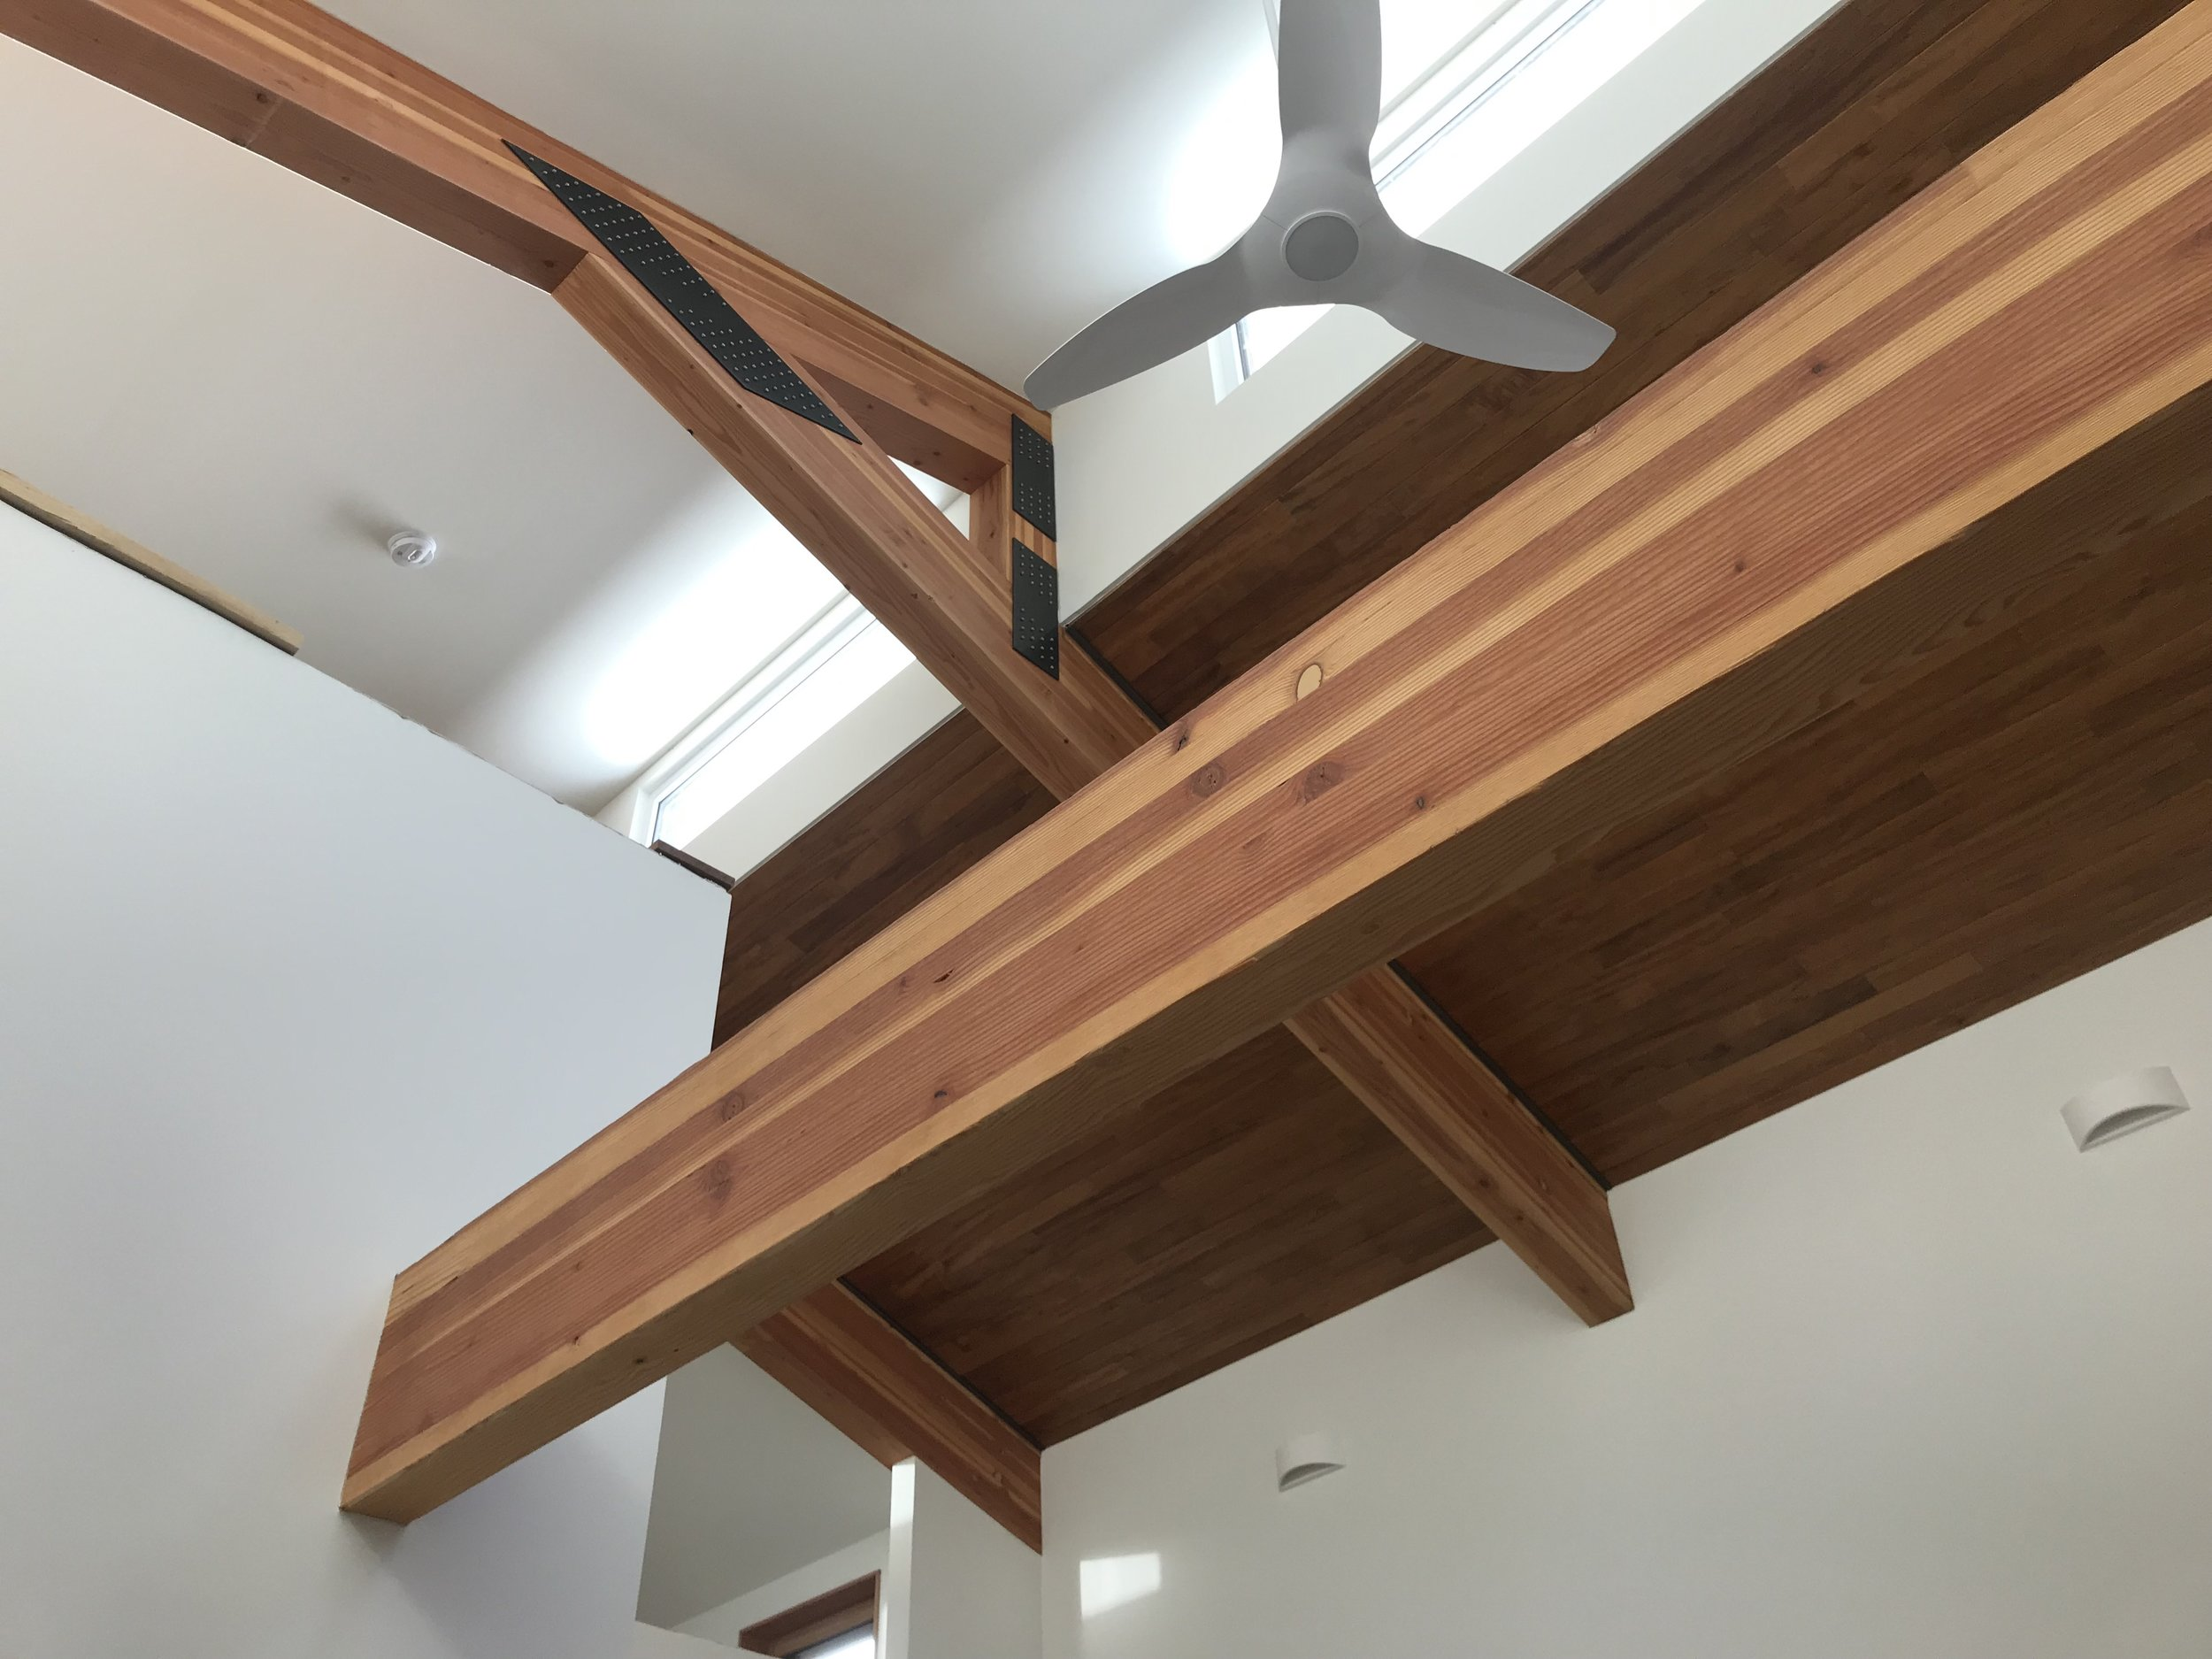 Noll Residence - A craftsman rebuild of a home on Seattle's Capitol Hill featuring structural insulation panels (SIPS).